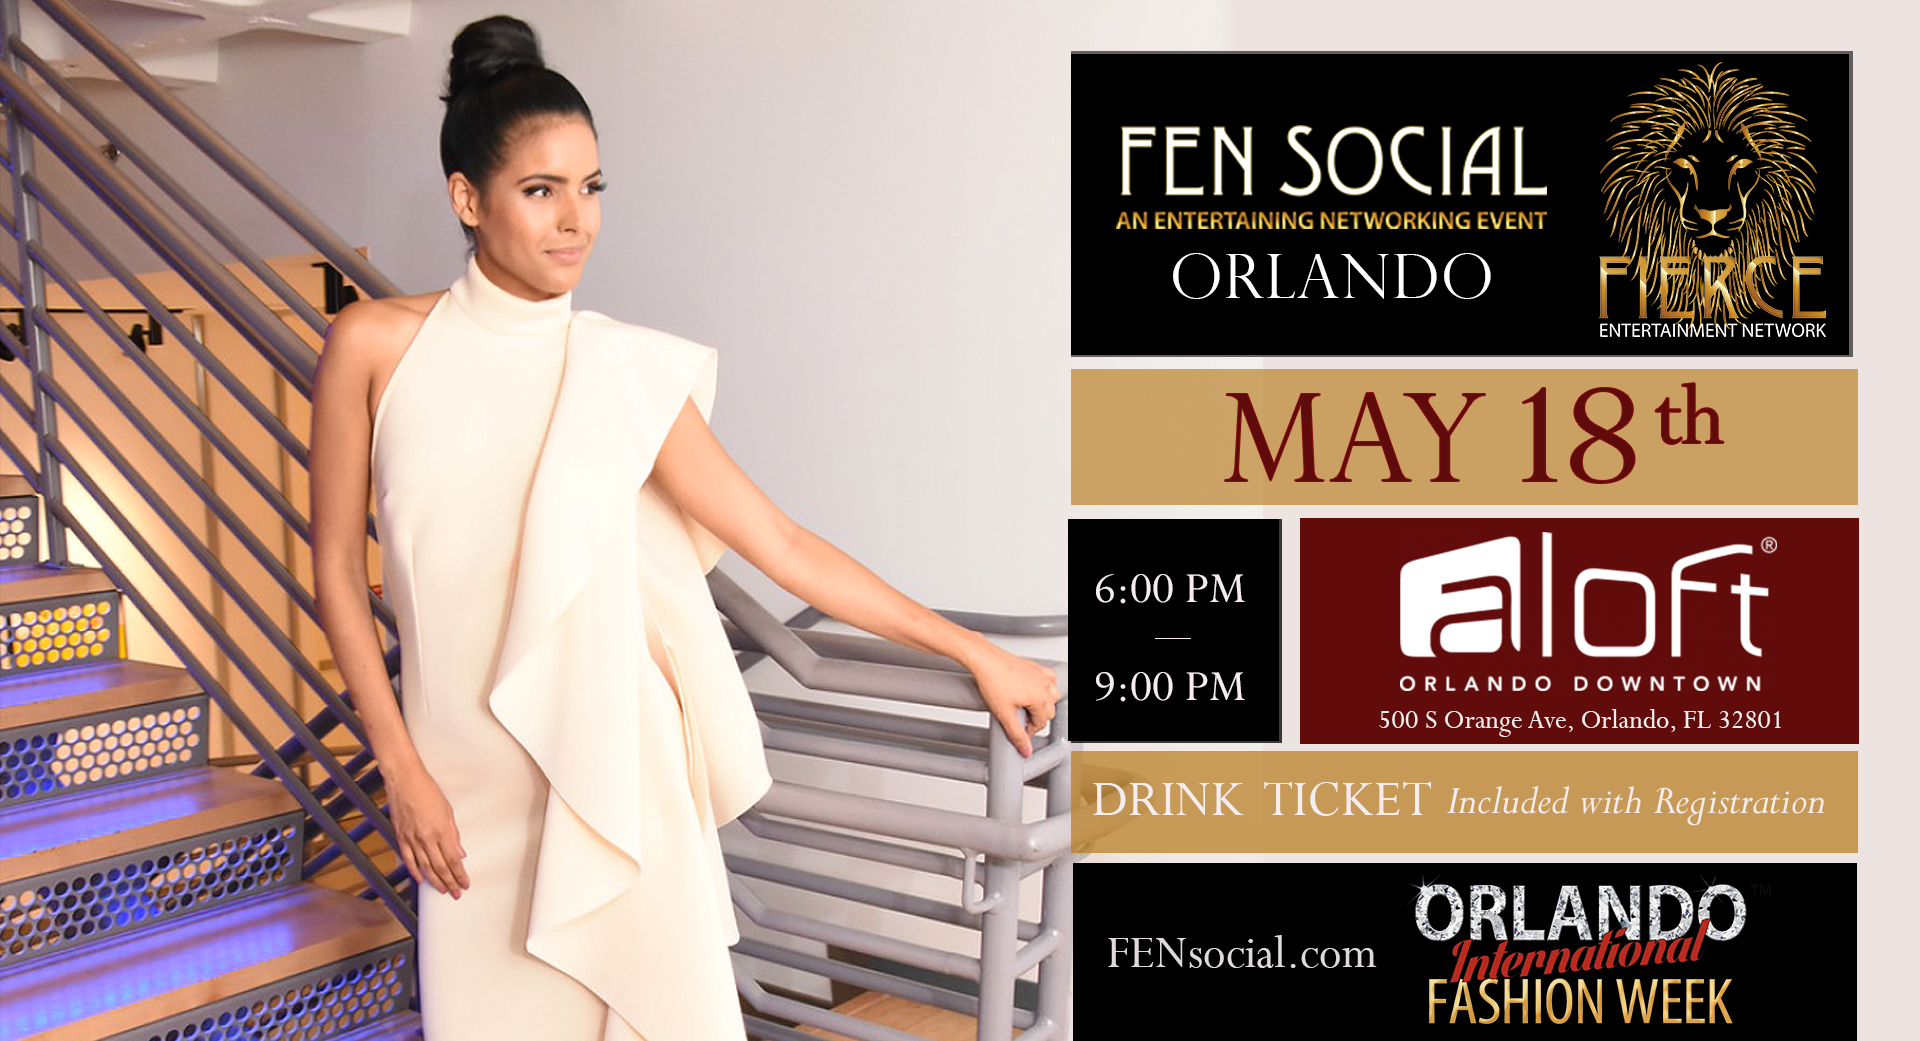 Fen Social A Networking Event Presented By Fierce Entertainment Management Orlandoatplay Com